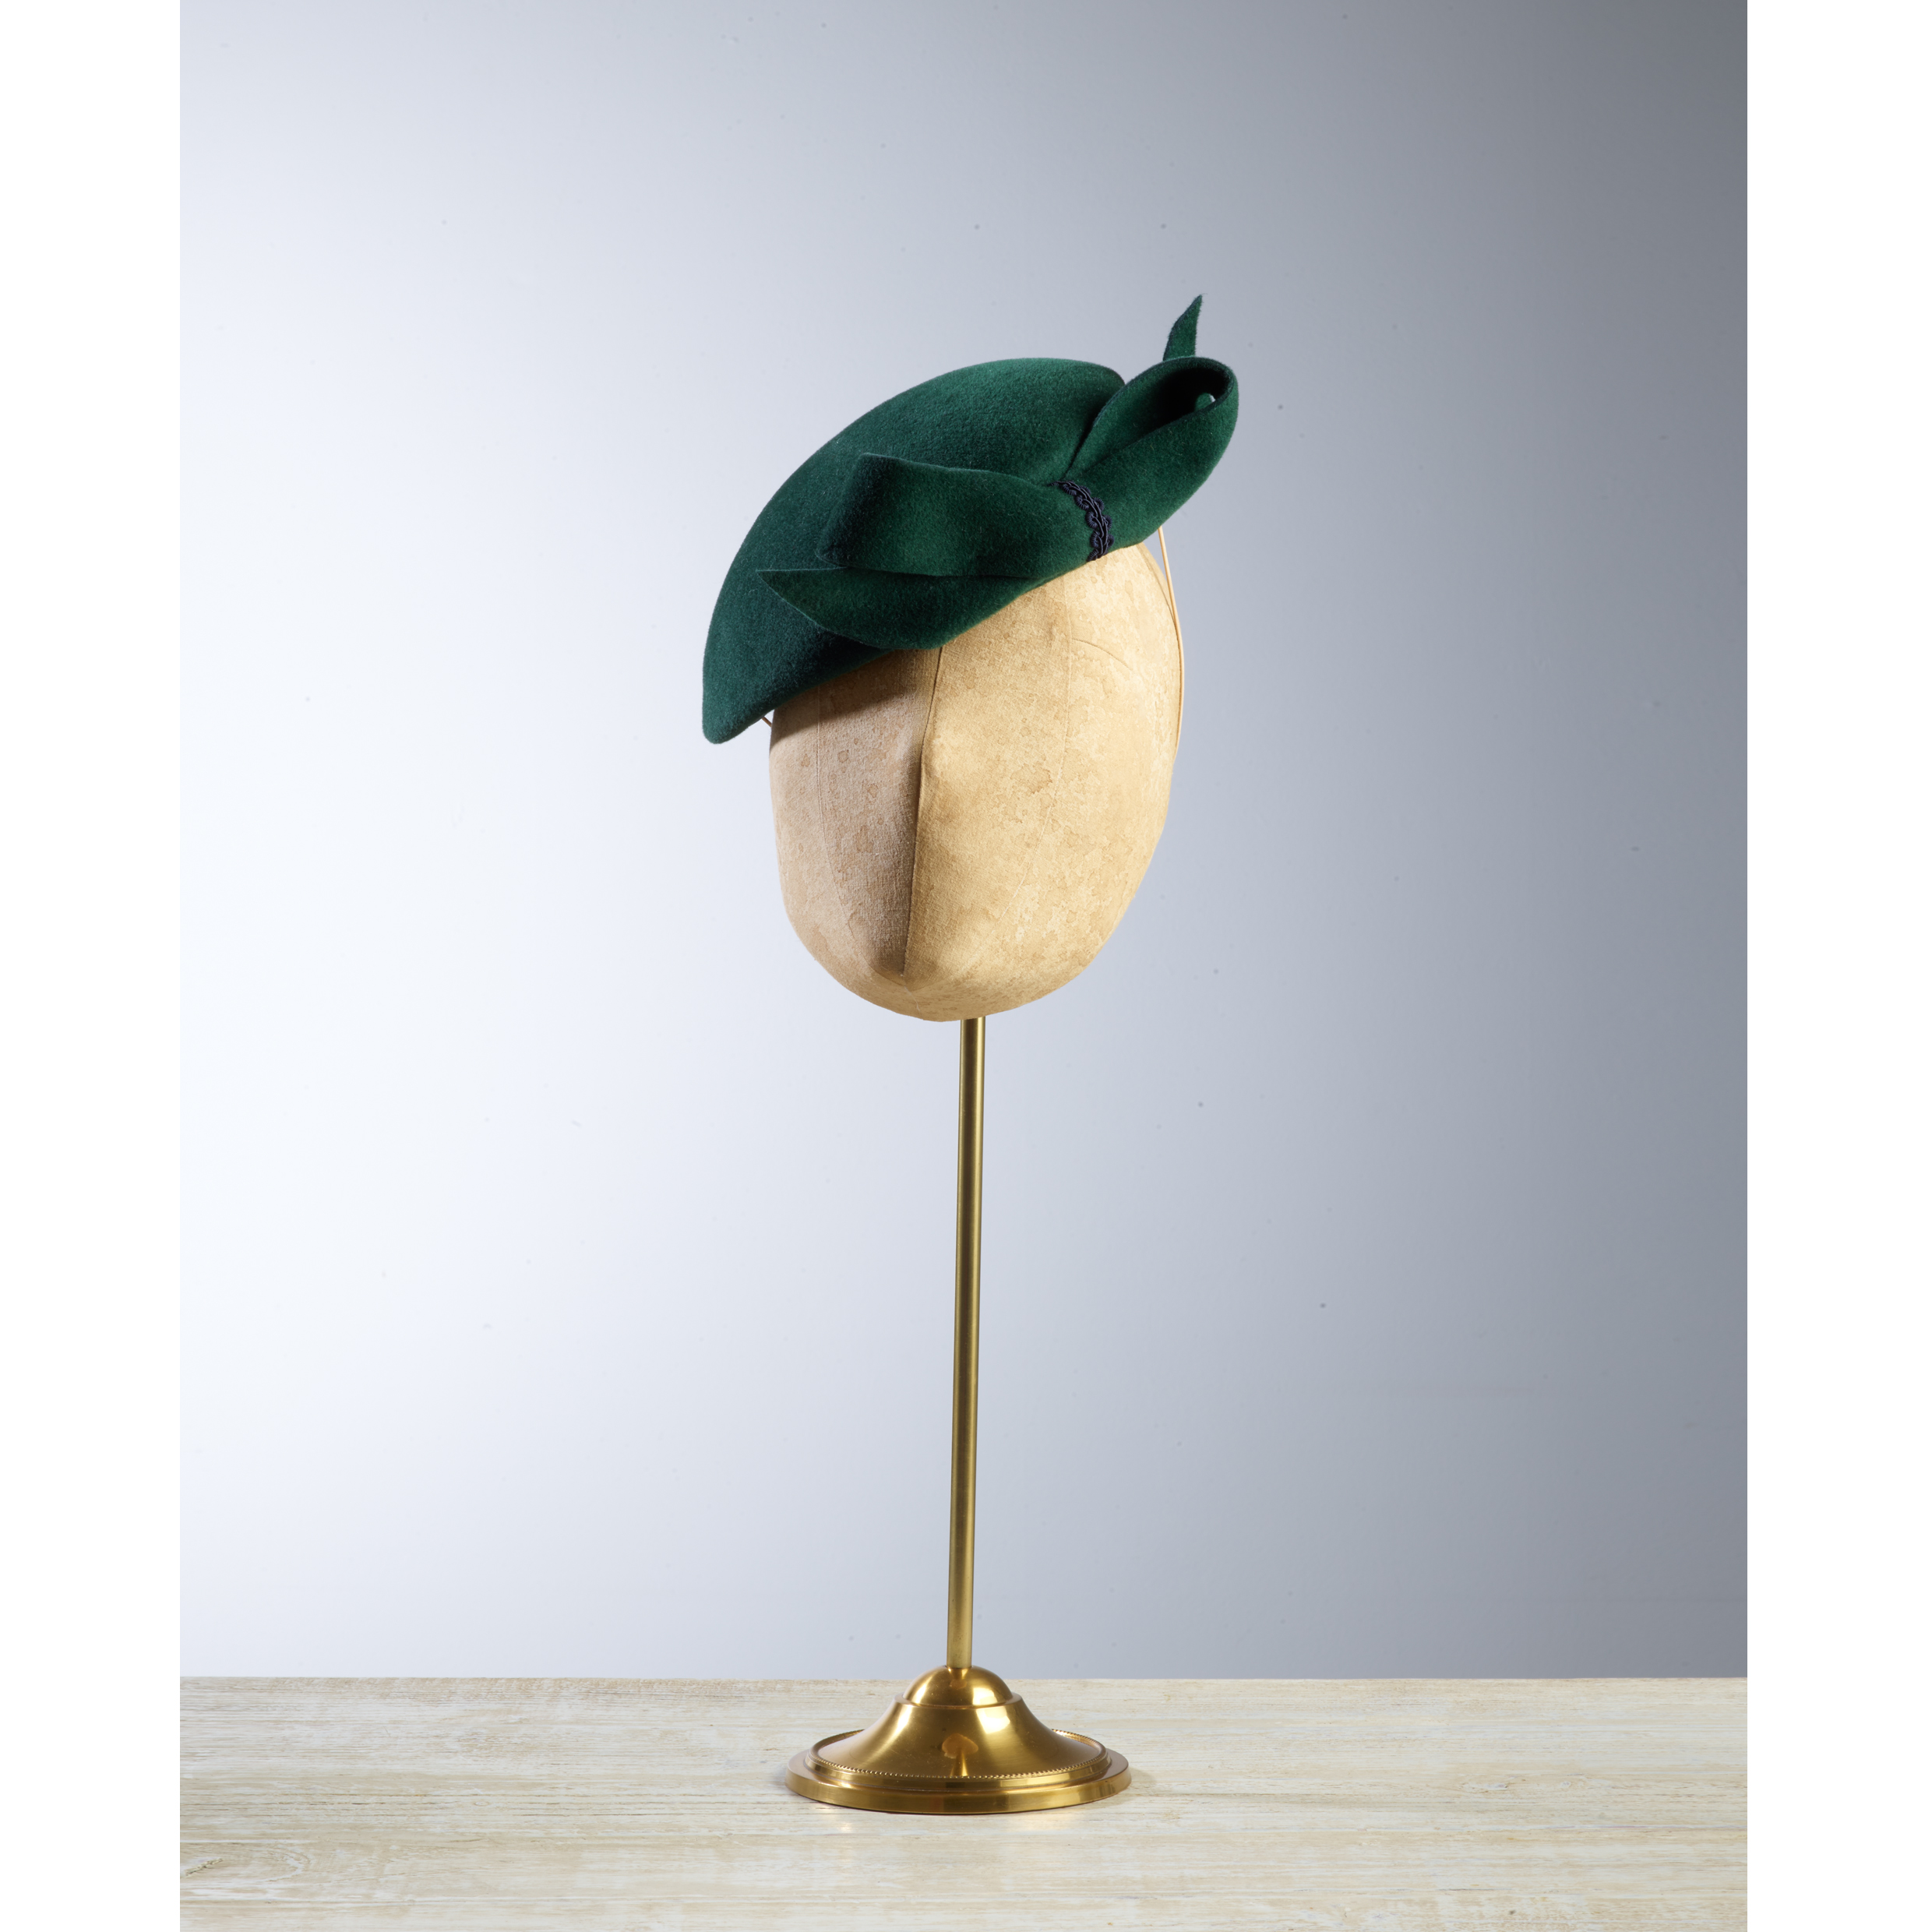 DART Emerald - £75  Emerald peachbloom felt oval headpiece, finished with a bow on the front.